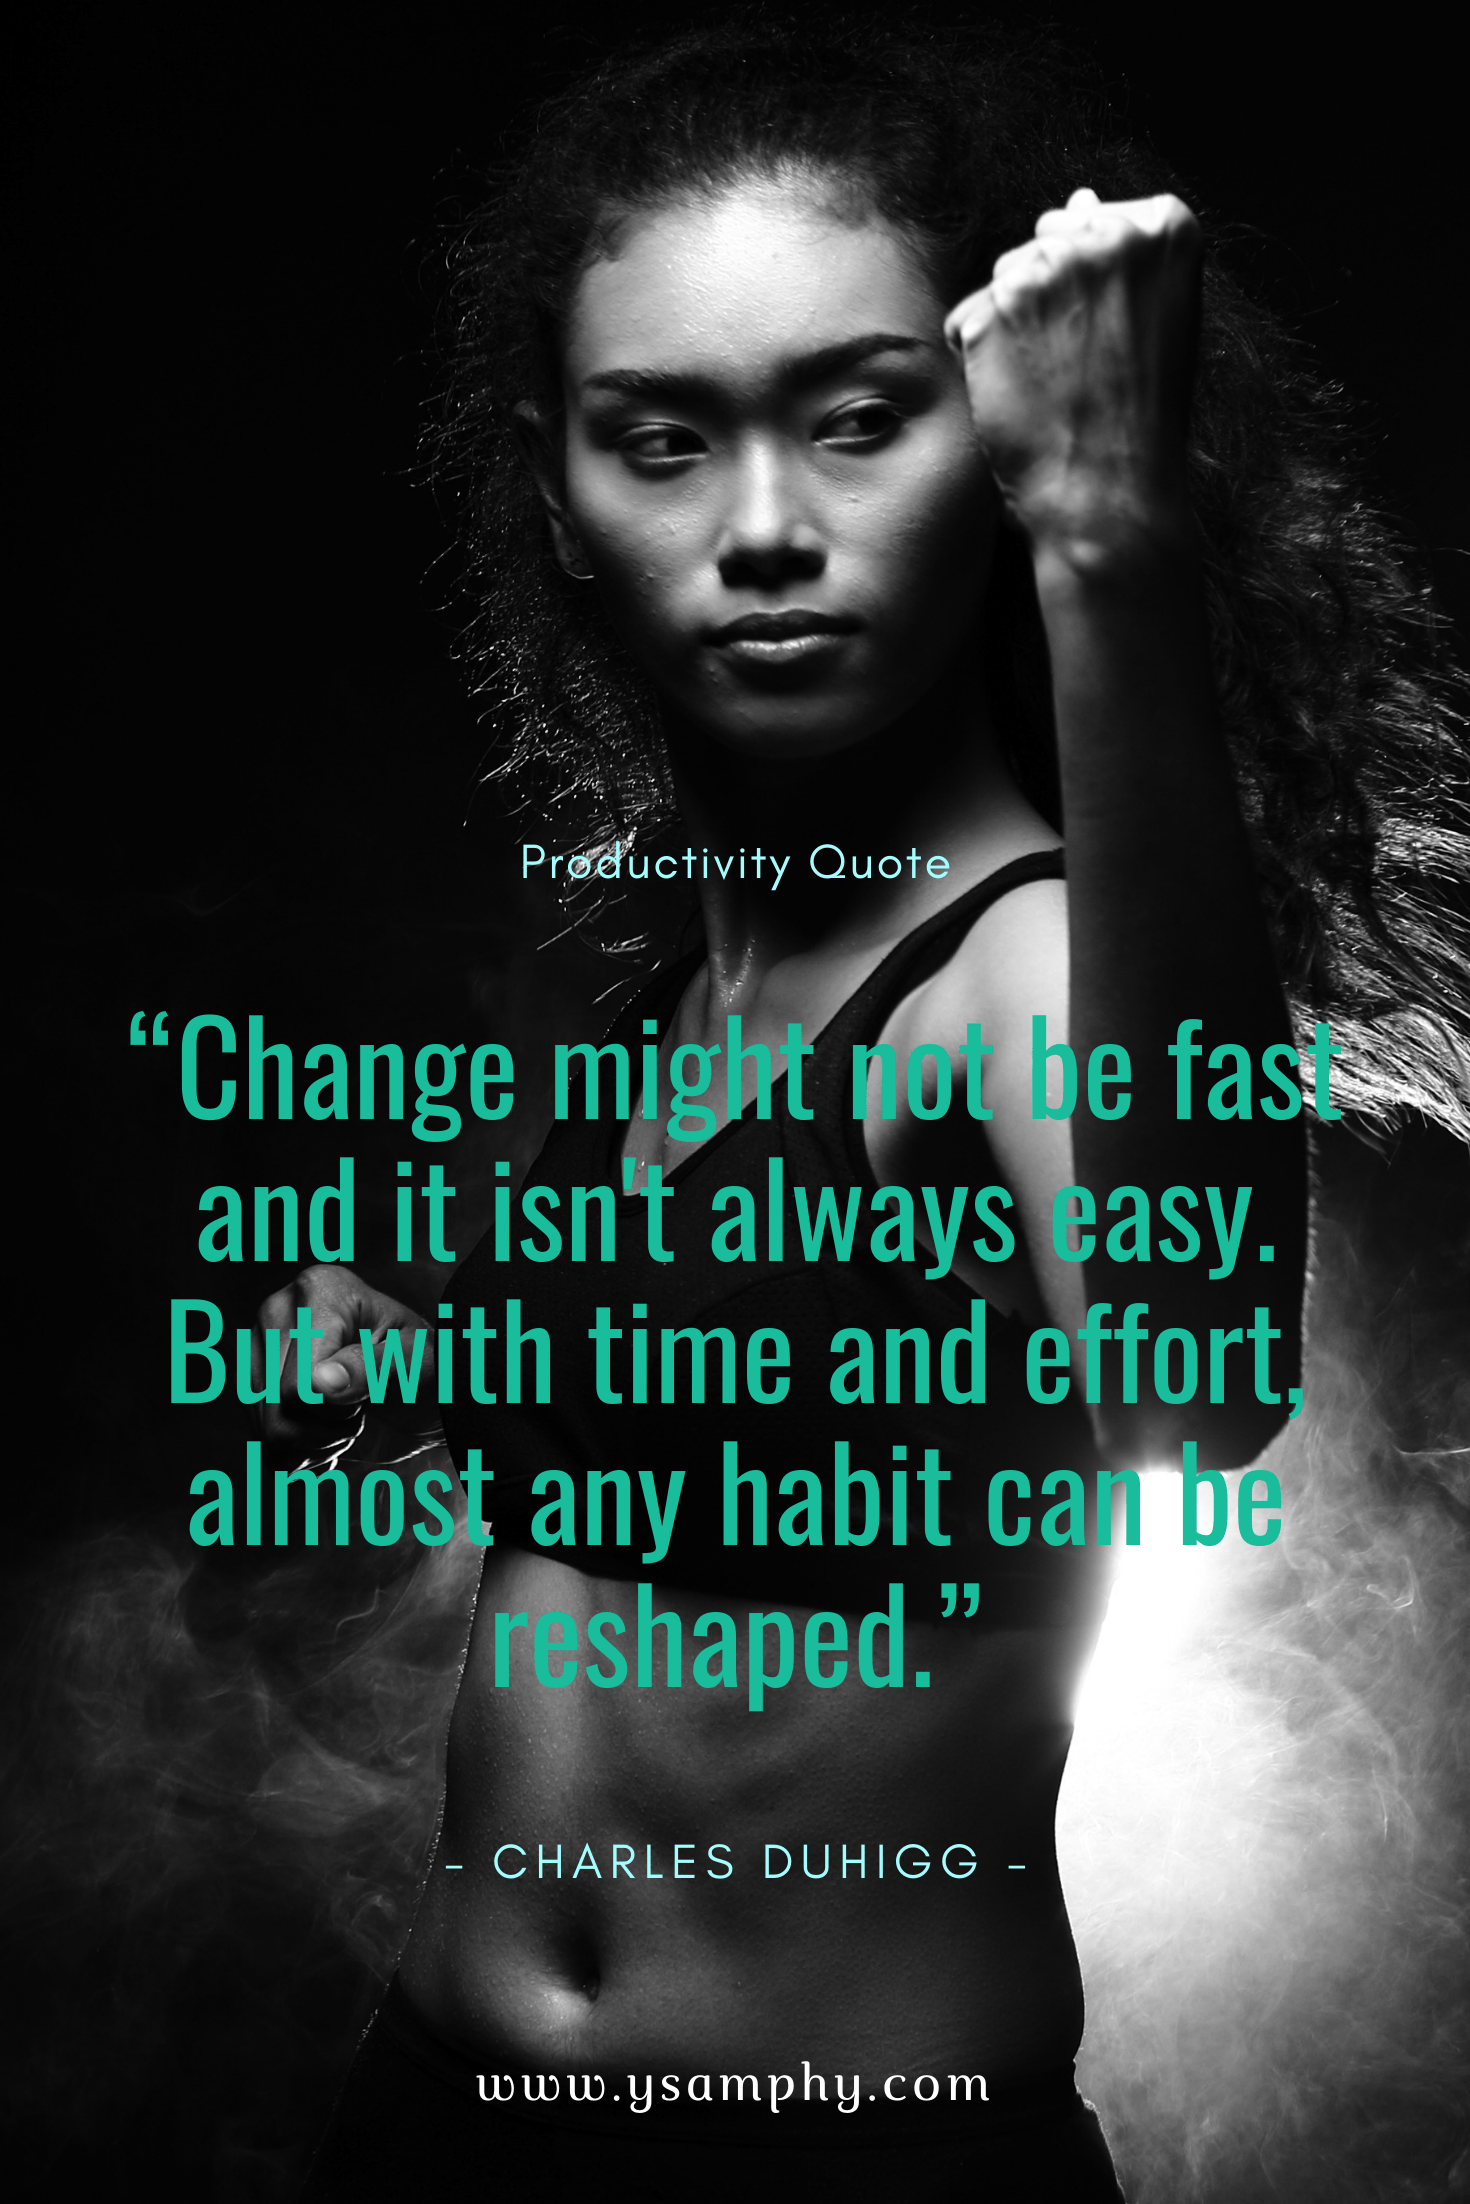 """Change might not be fast and it isn't always easy. But with time and effort, almost any habit can be reshaped."" ~Charles Duhigg"